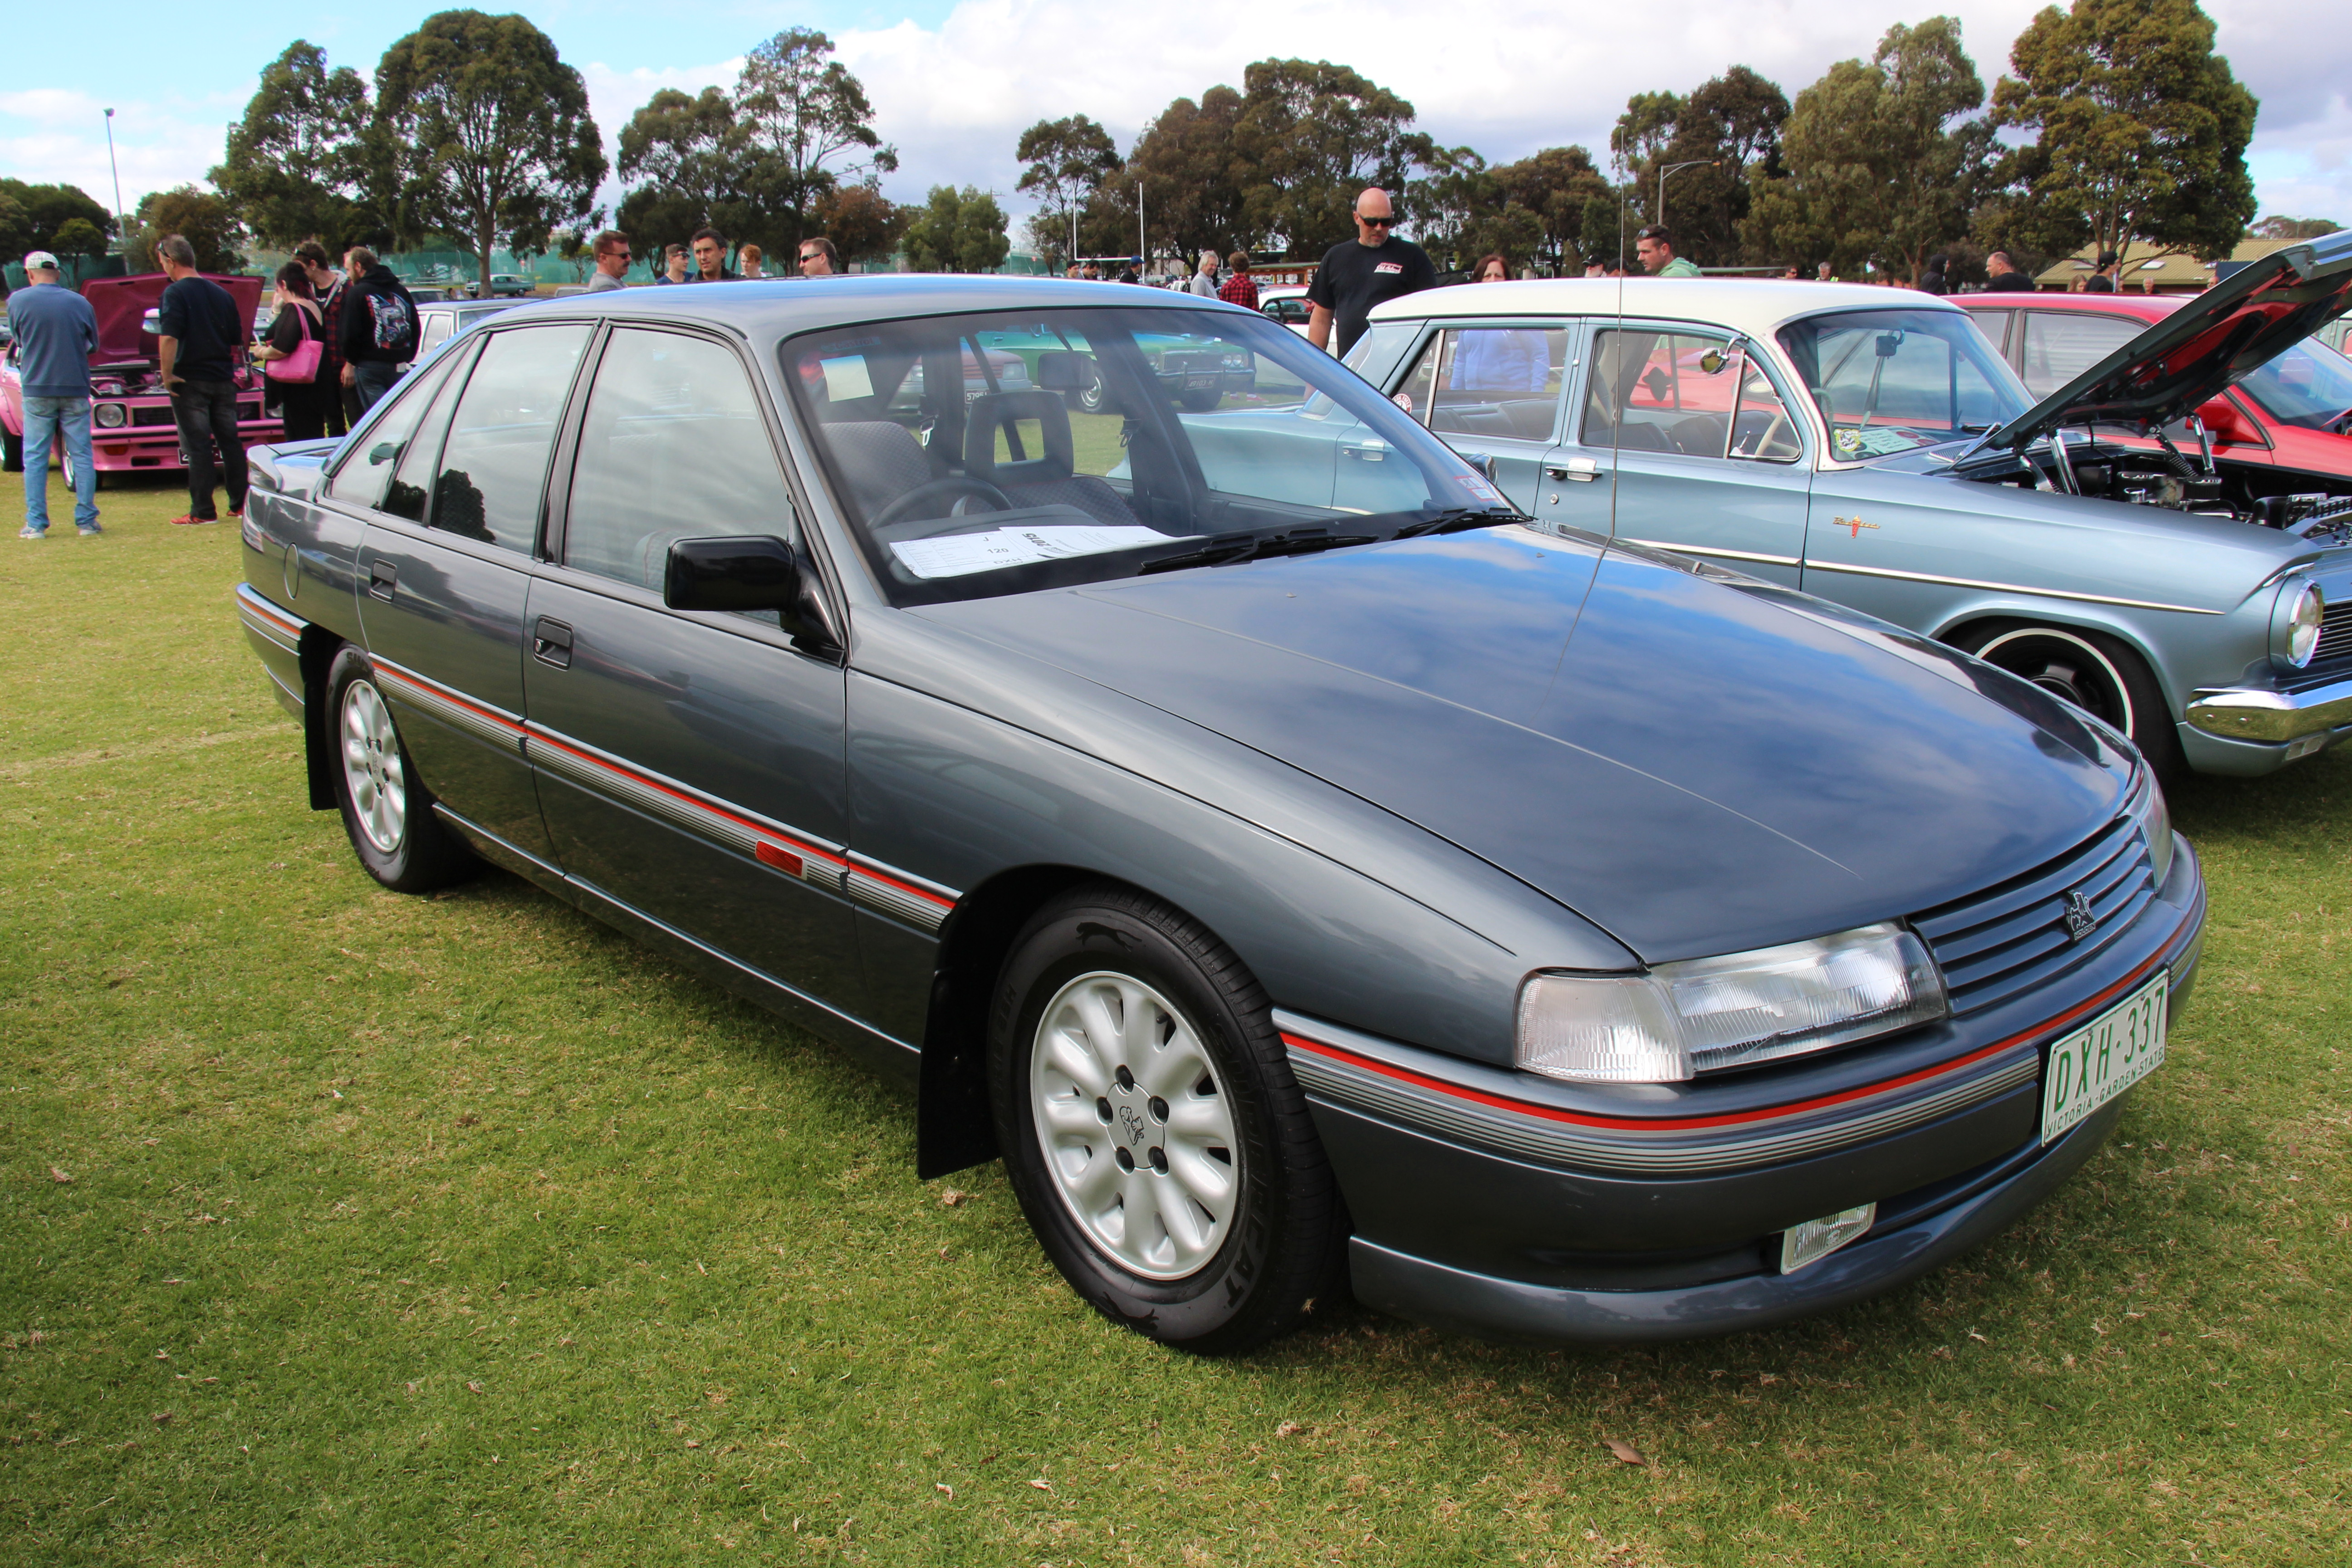 1988 1991 holden vn calais with Holden  Modore  28vn 29 on Holden  modore  VN also Voitures D Australie F P V 2002 as well 1994 besides 162064659783 additionally Vp  modore Problems.